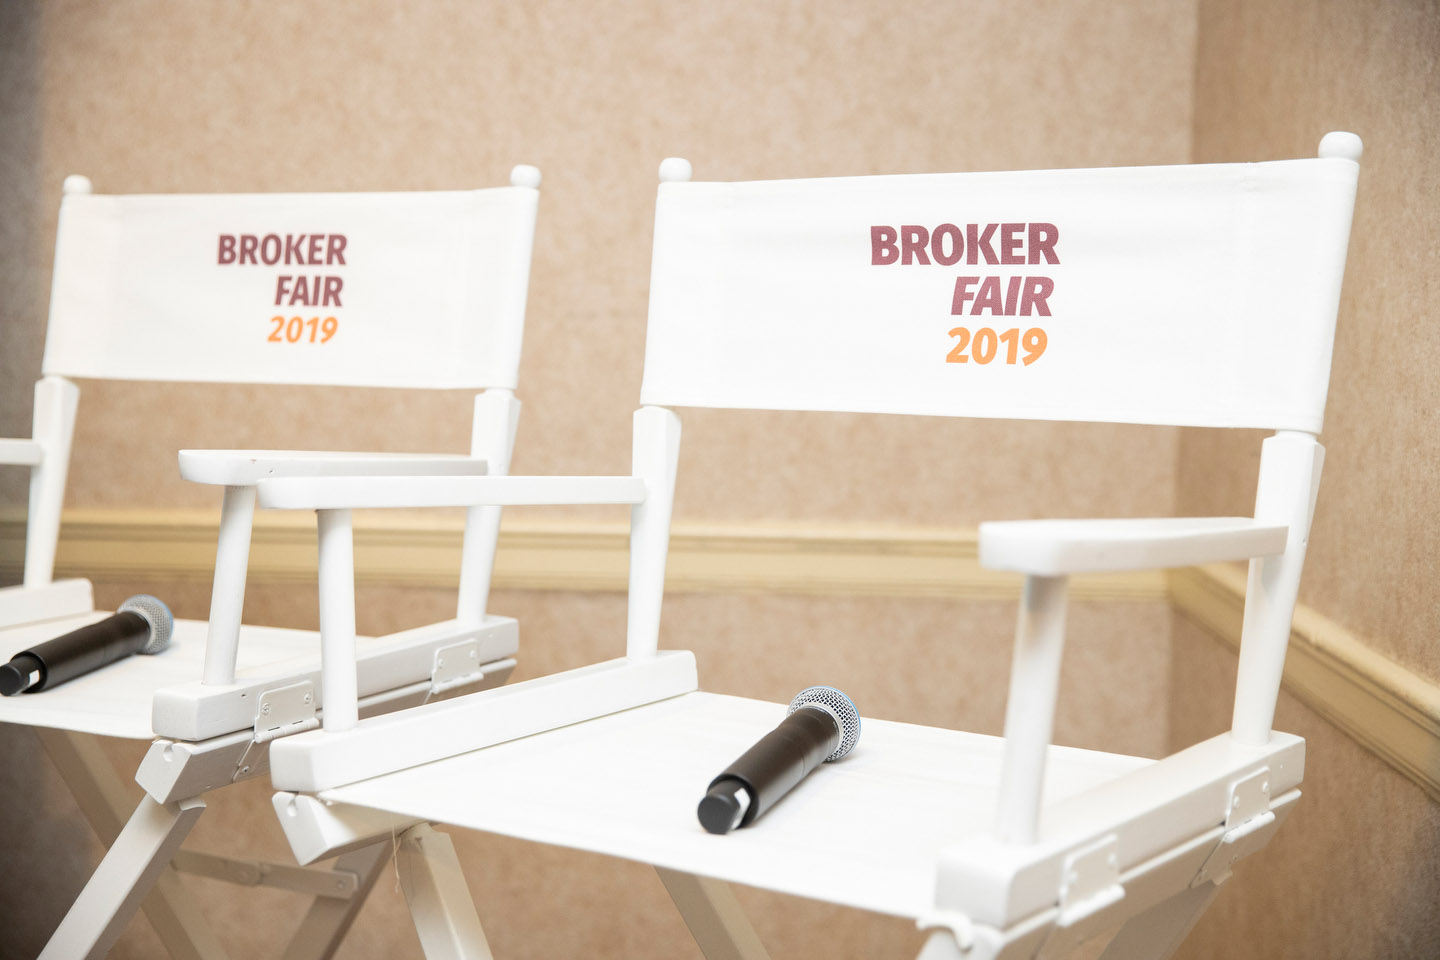 Broker Fair 2019 - Presented by deBanked - 234